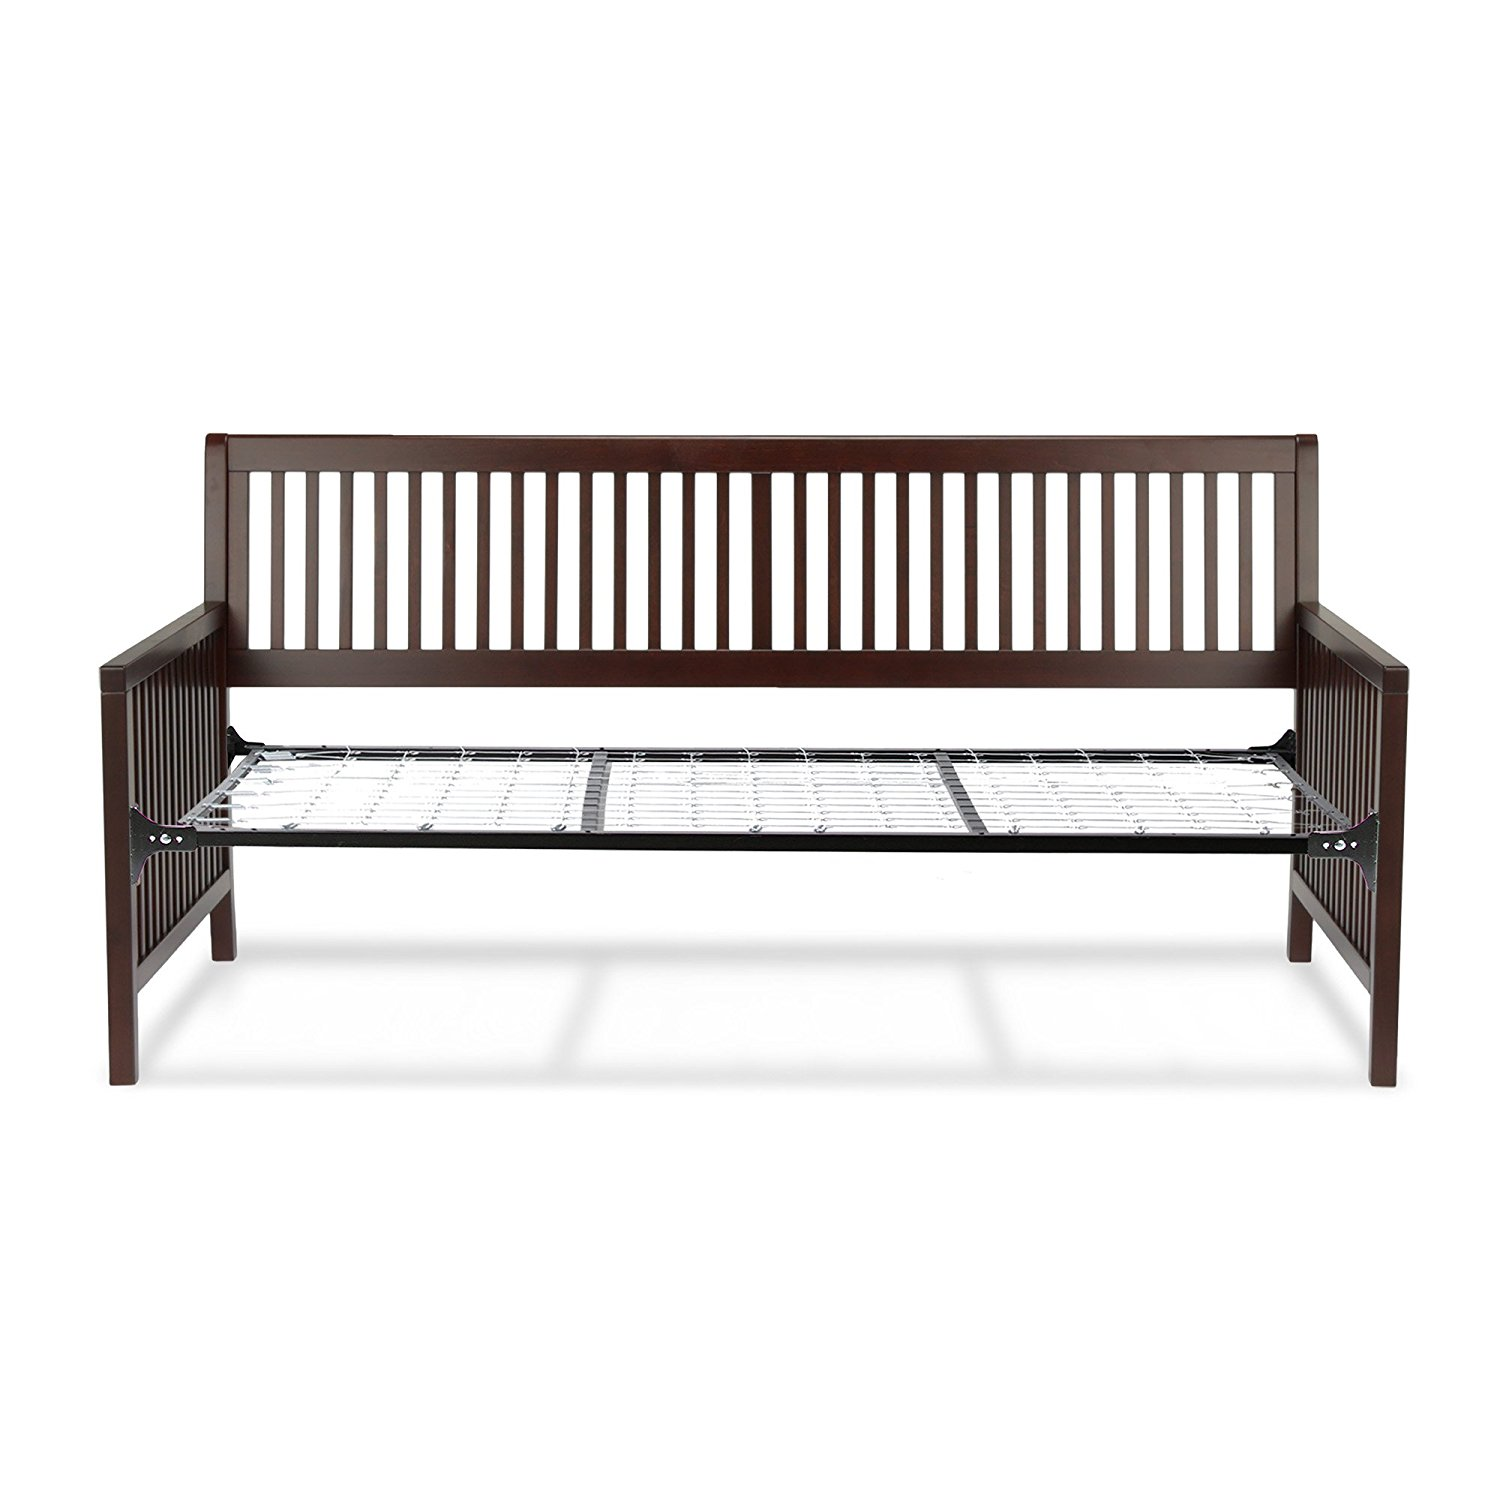 Fashion Bed Group Mission Complete Wood Daybed with Link Spring Support Frame and Open-Slatted Panels, Espresso Finish, Twin